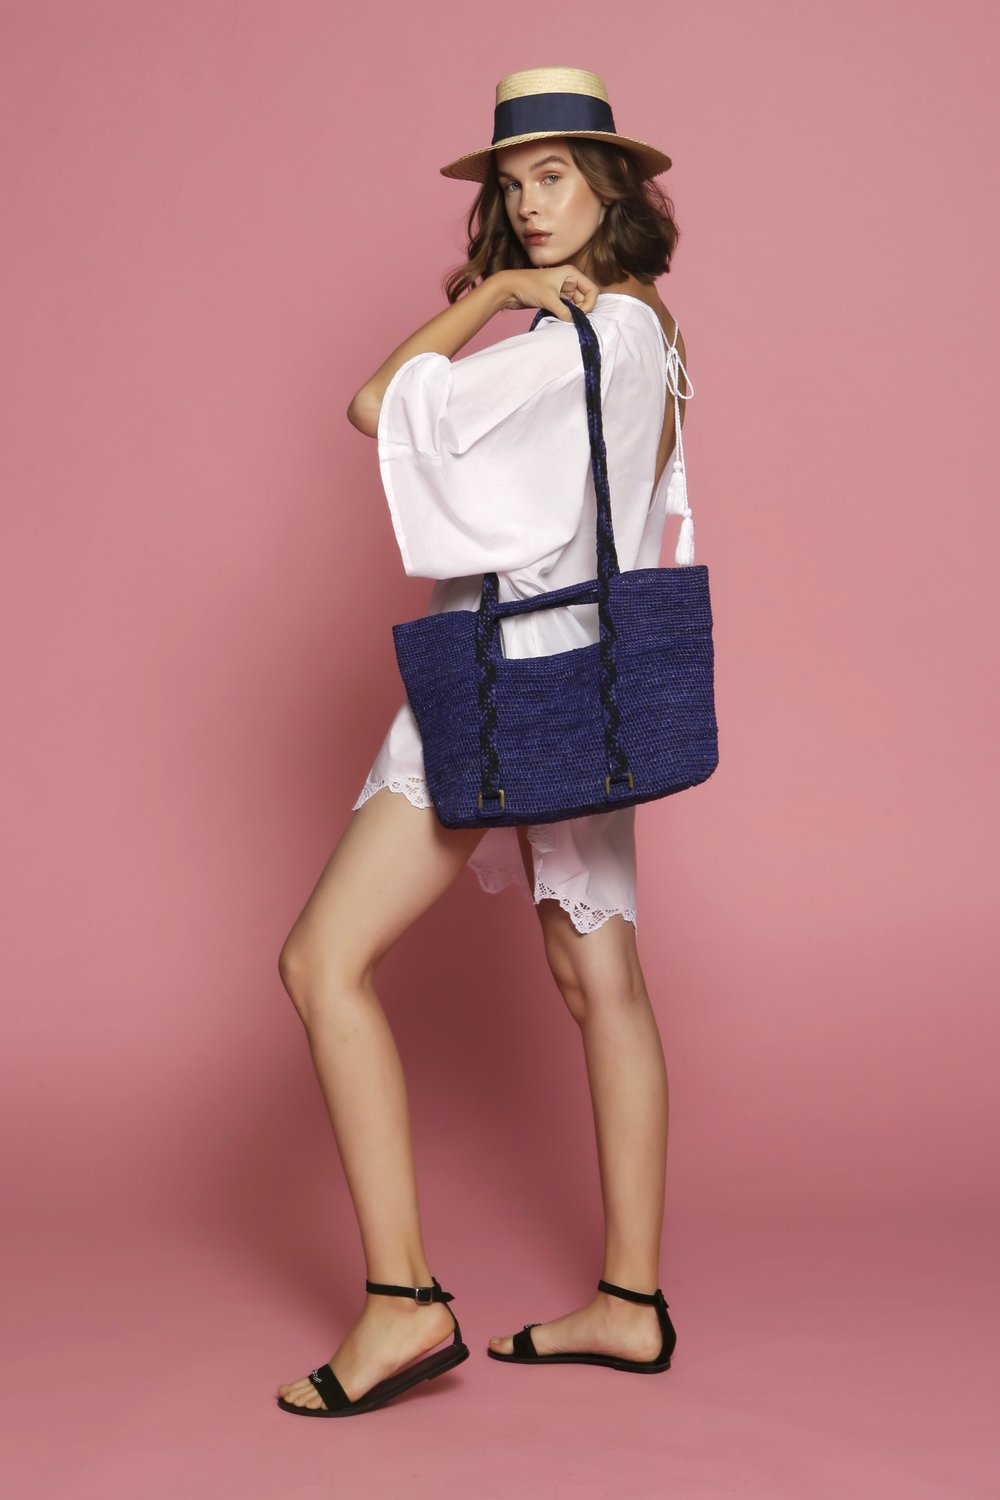 Coverup dress Claudine and Ines shoulder beach bag.jpeg